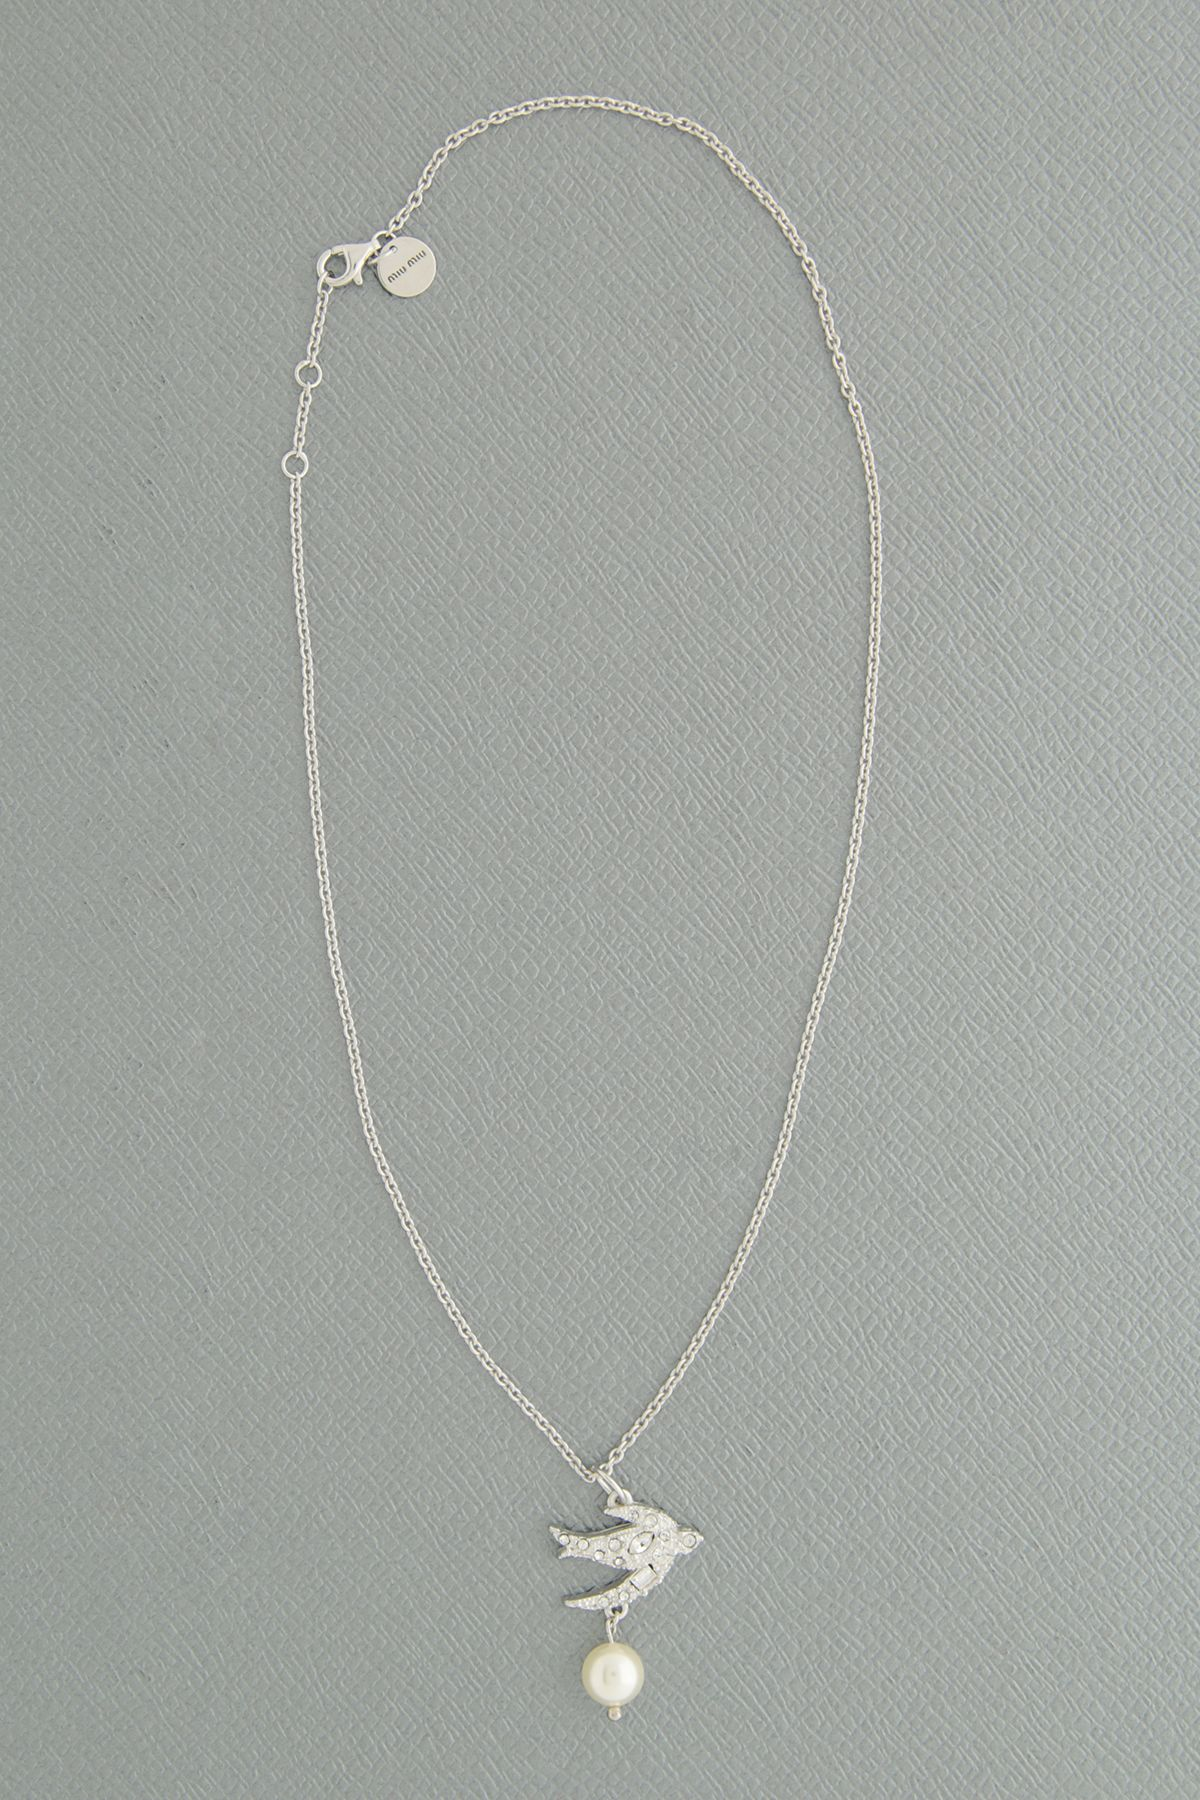 Miu Miu Silver Necklace